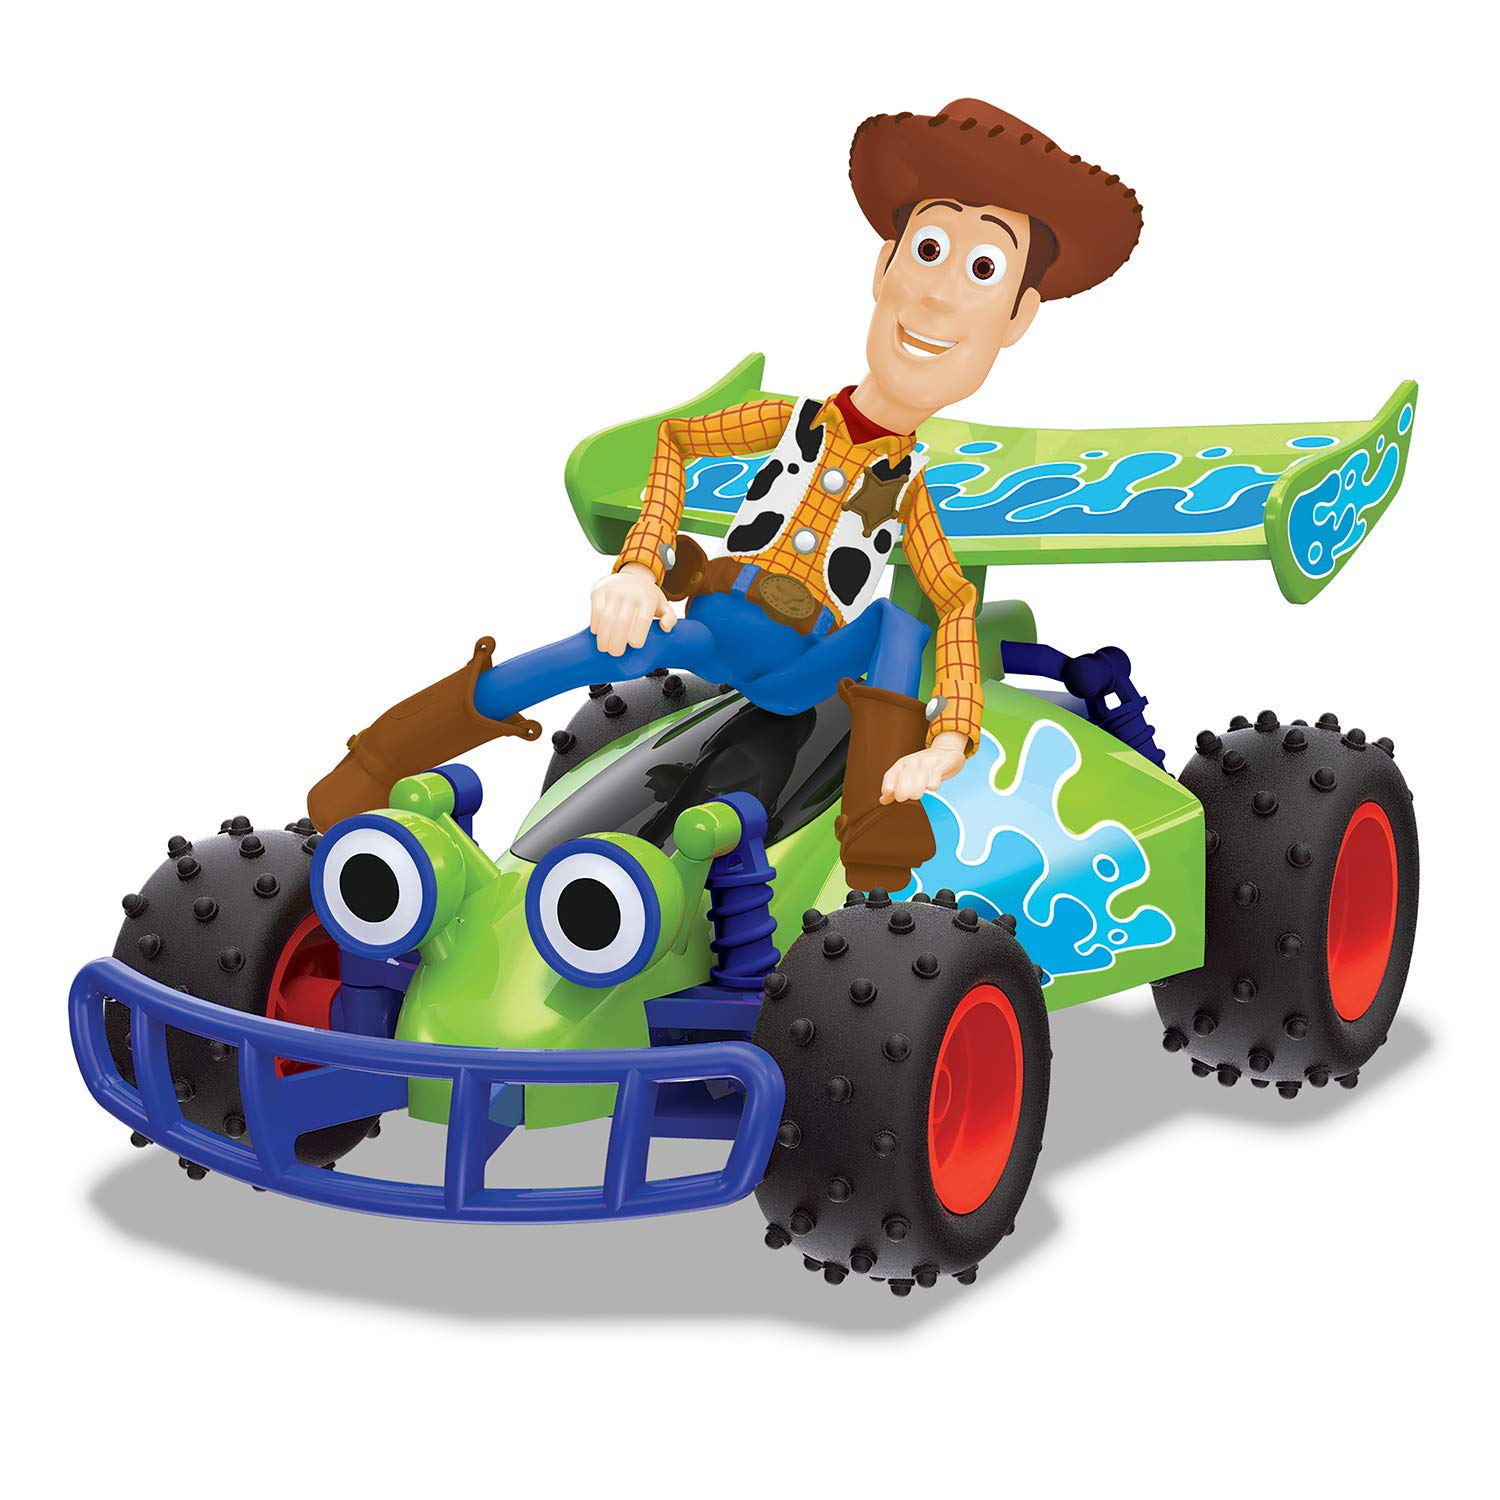 RC TOY STORY - BUGGY CON WOODY 3154001 - N55719